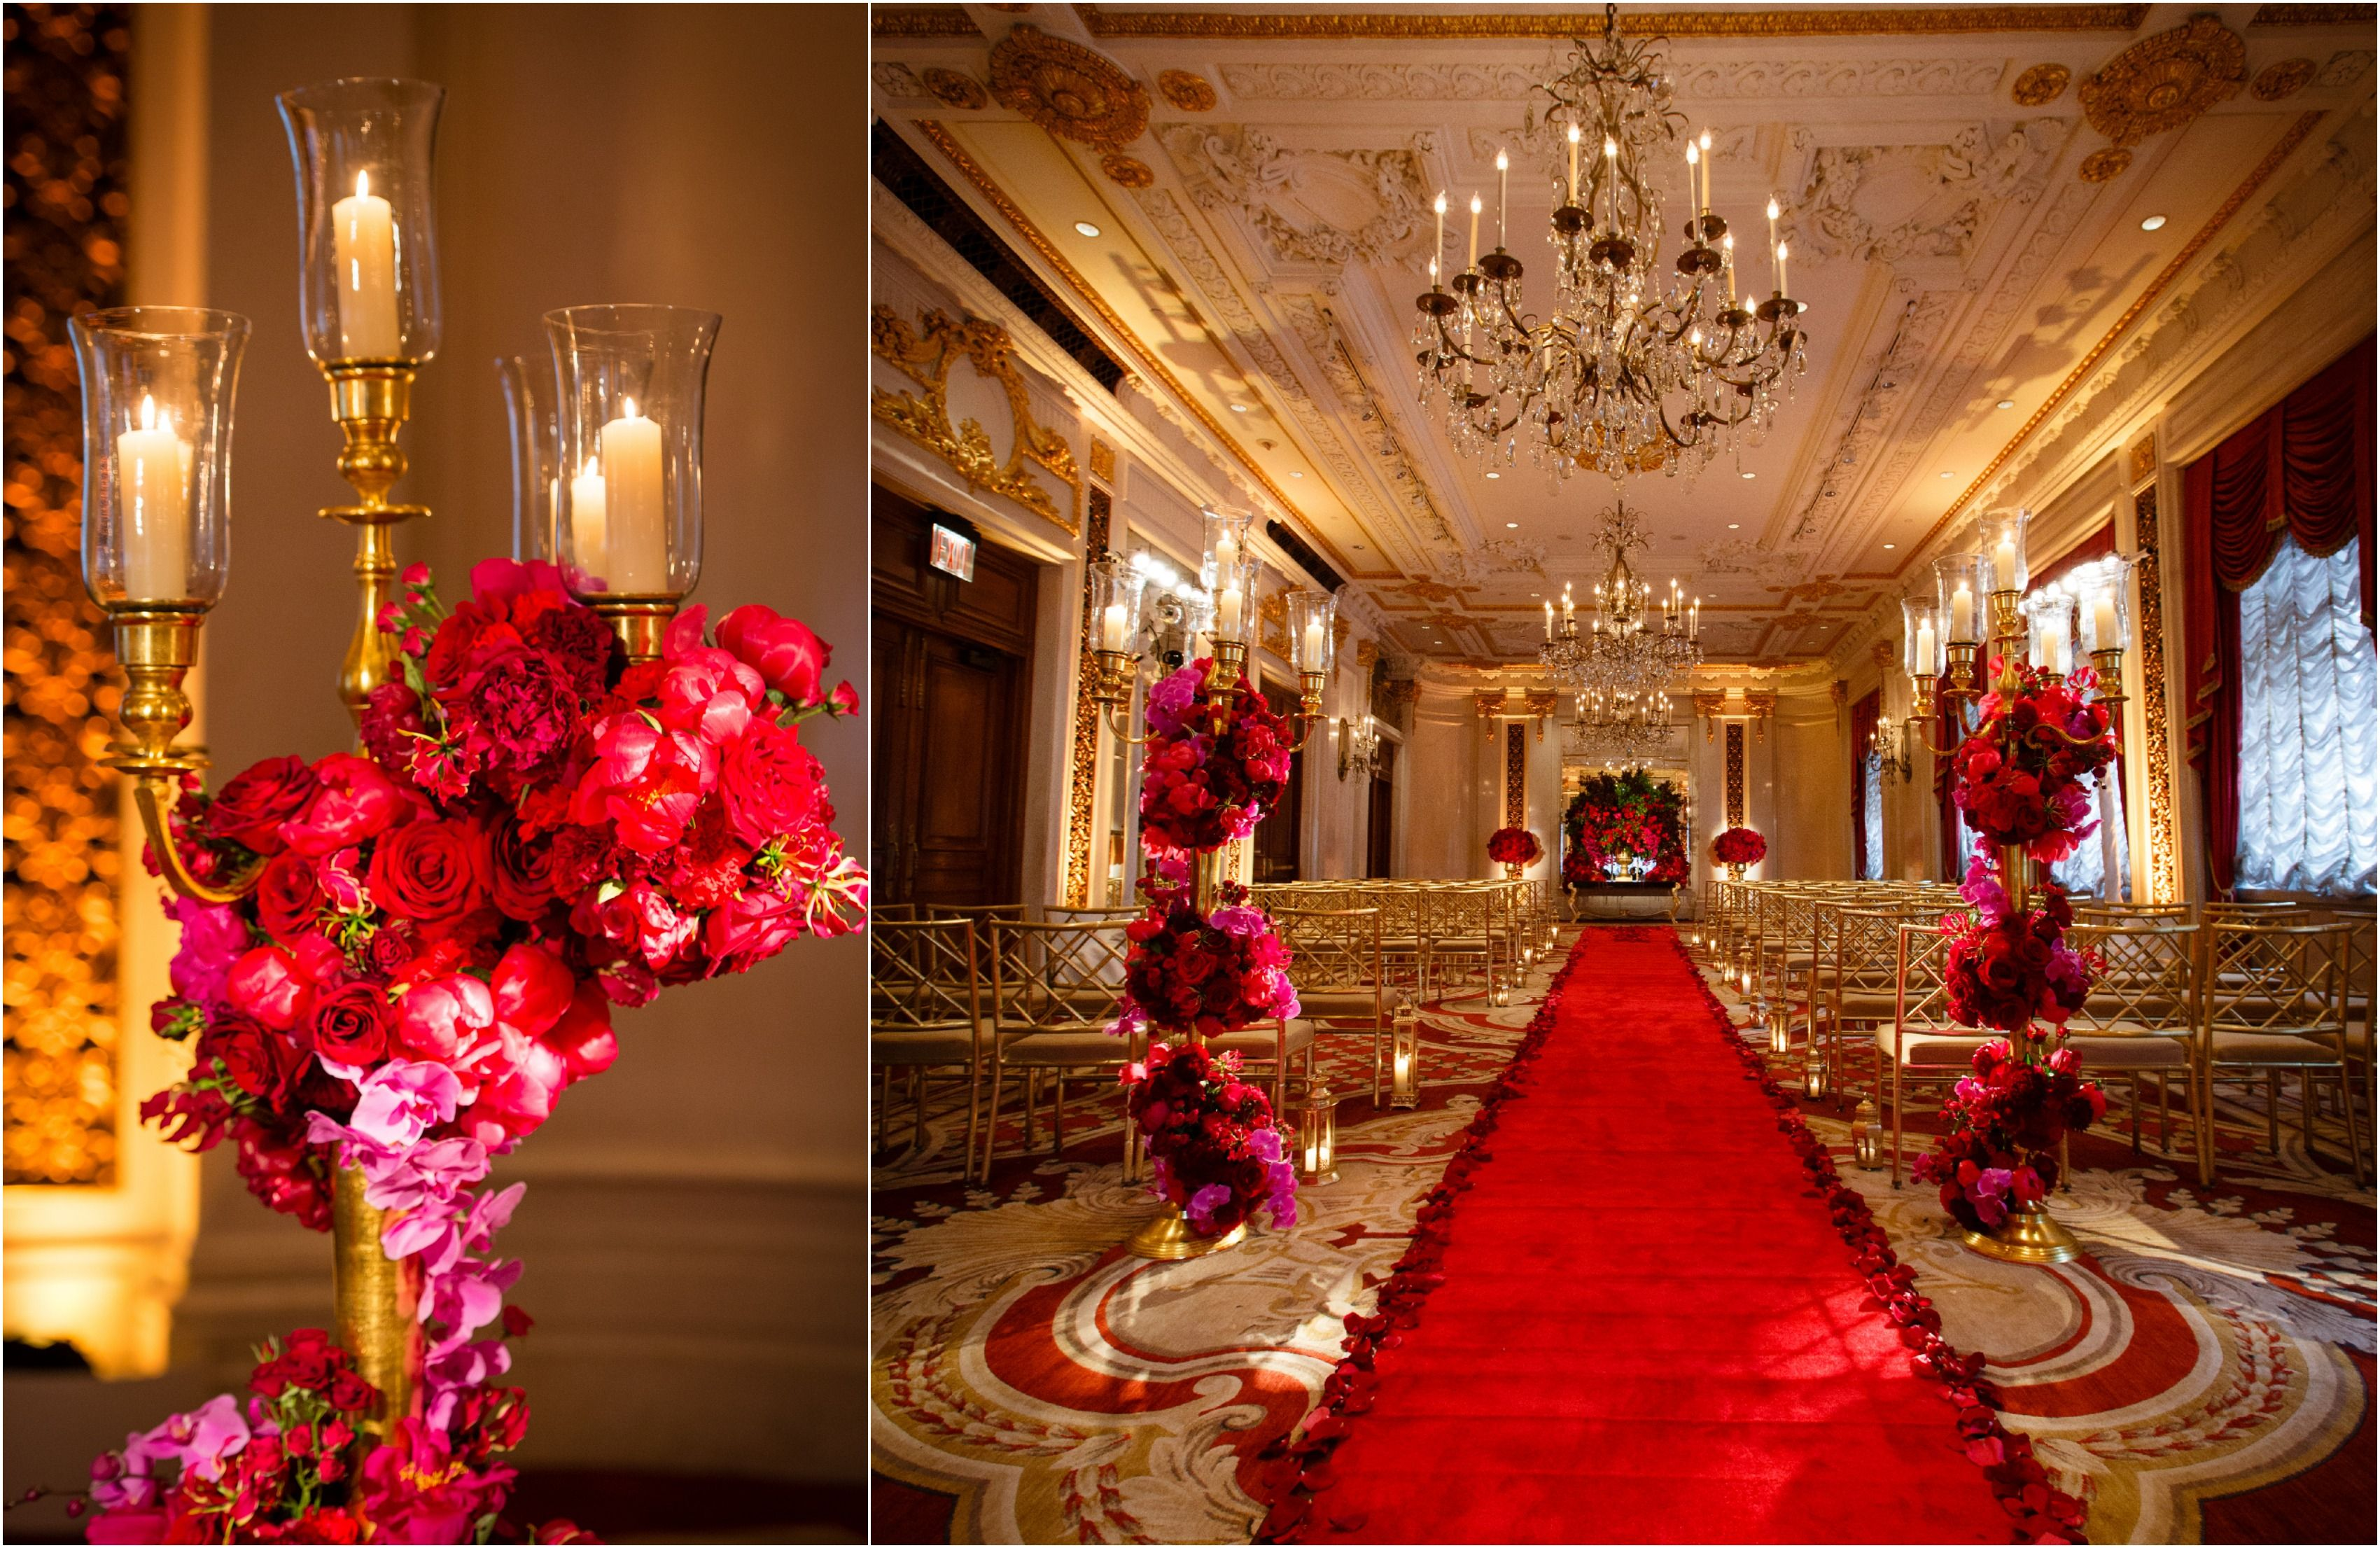 st-regis-nyc-wedding-pink-red-flowers-roses-bouwuet-purple-orchid